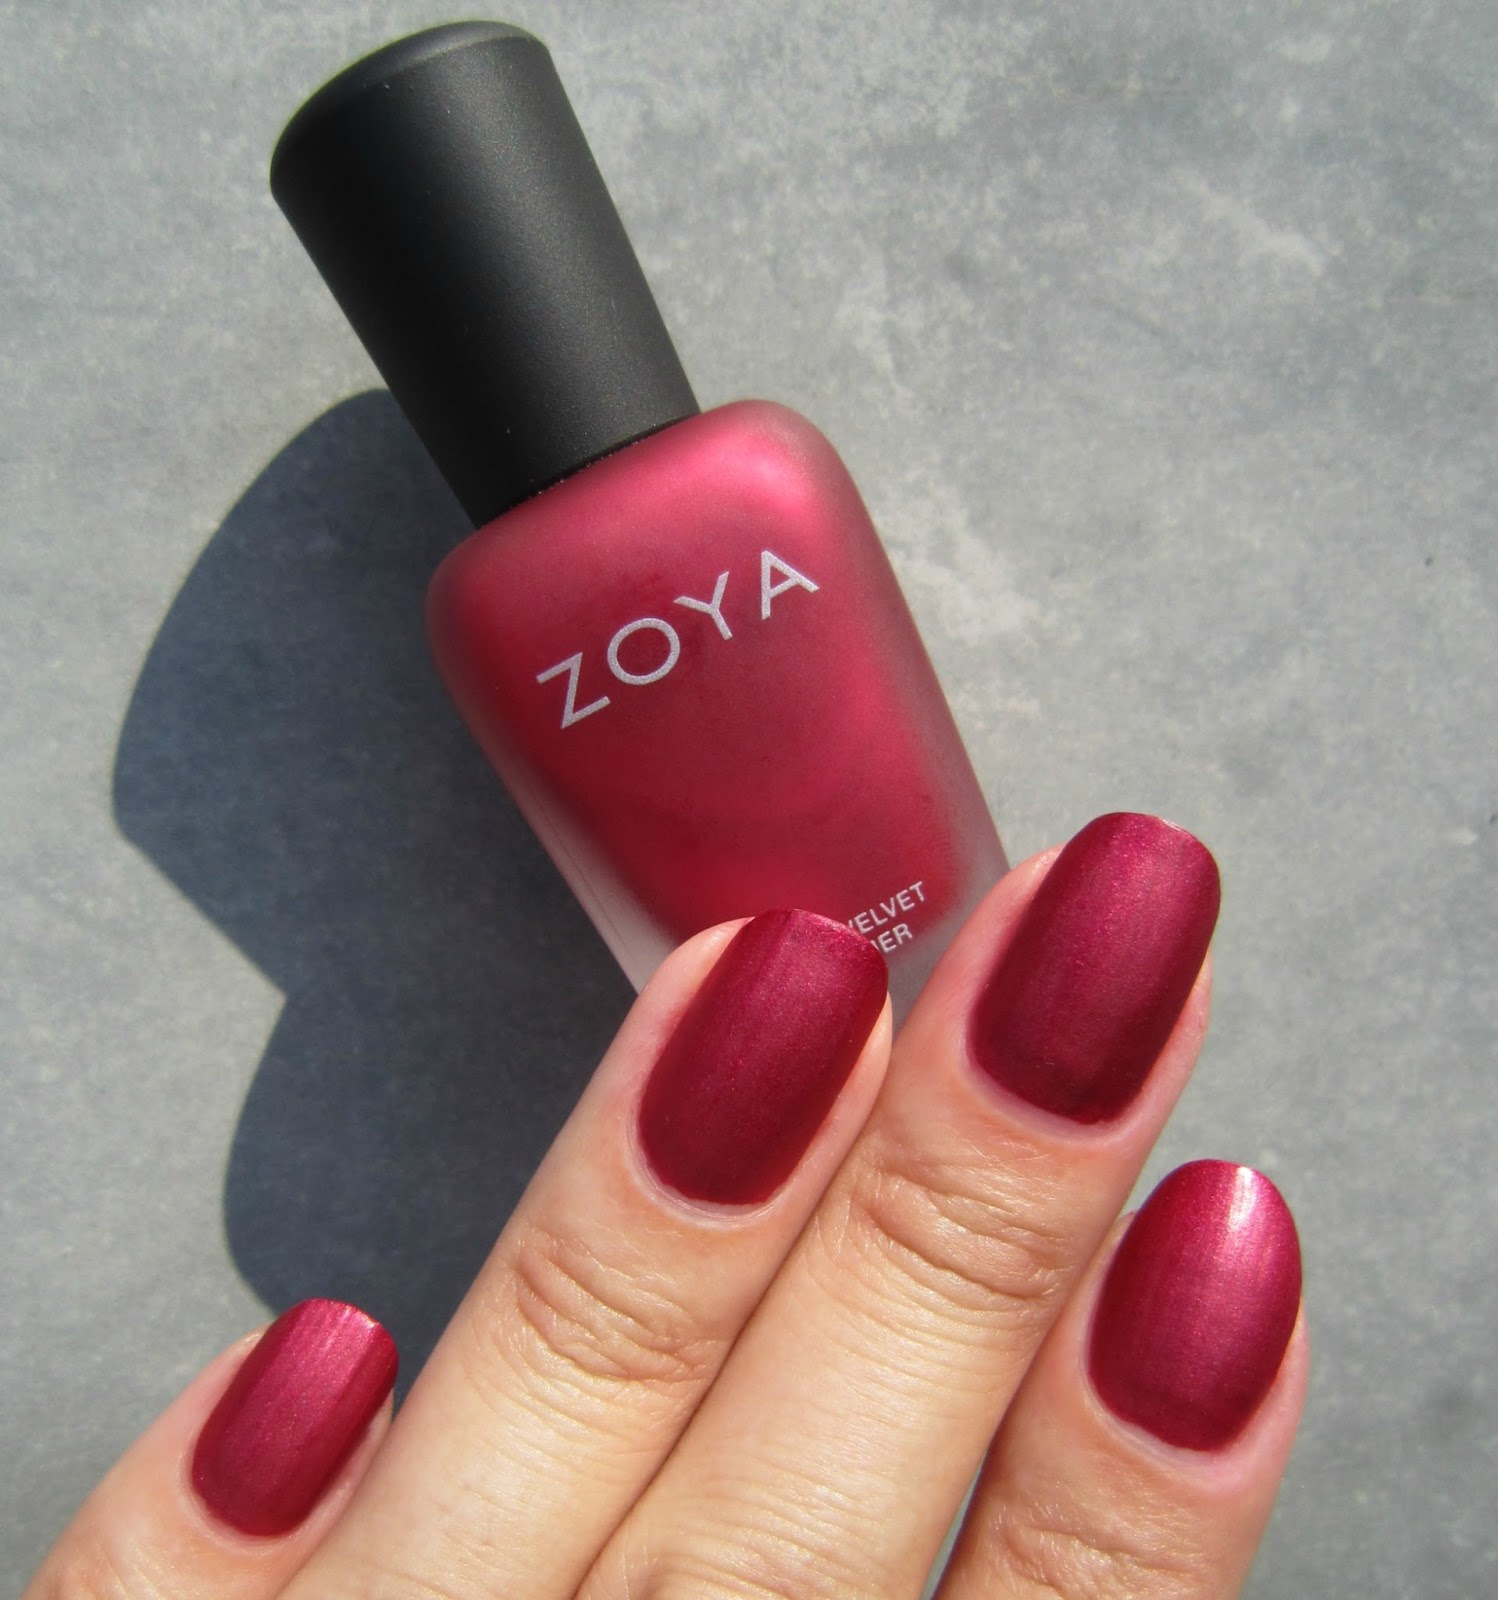 Concrete And Nail Polish Zoya Posh